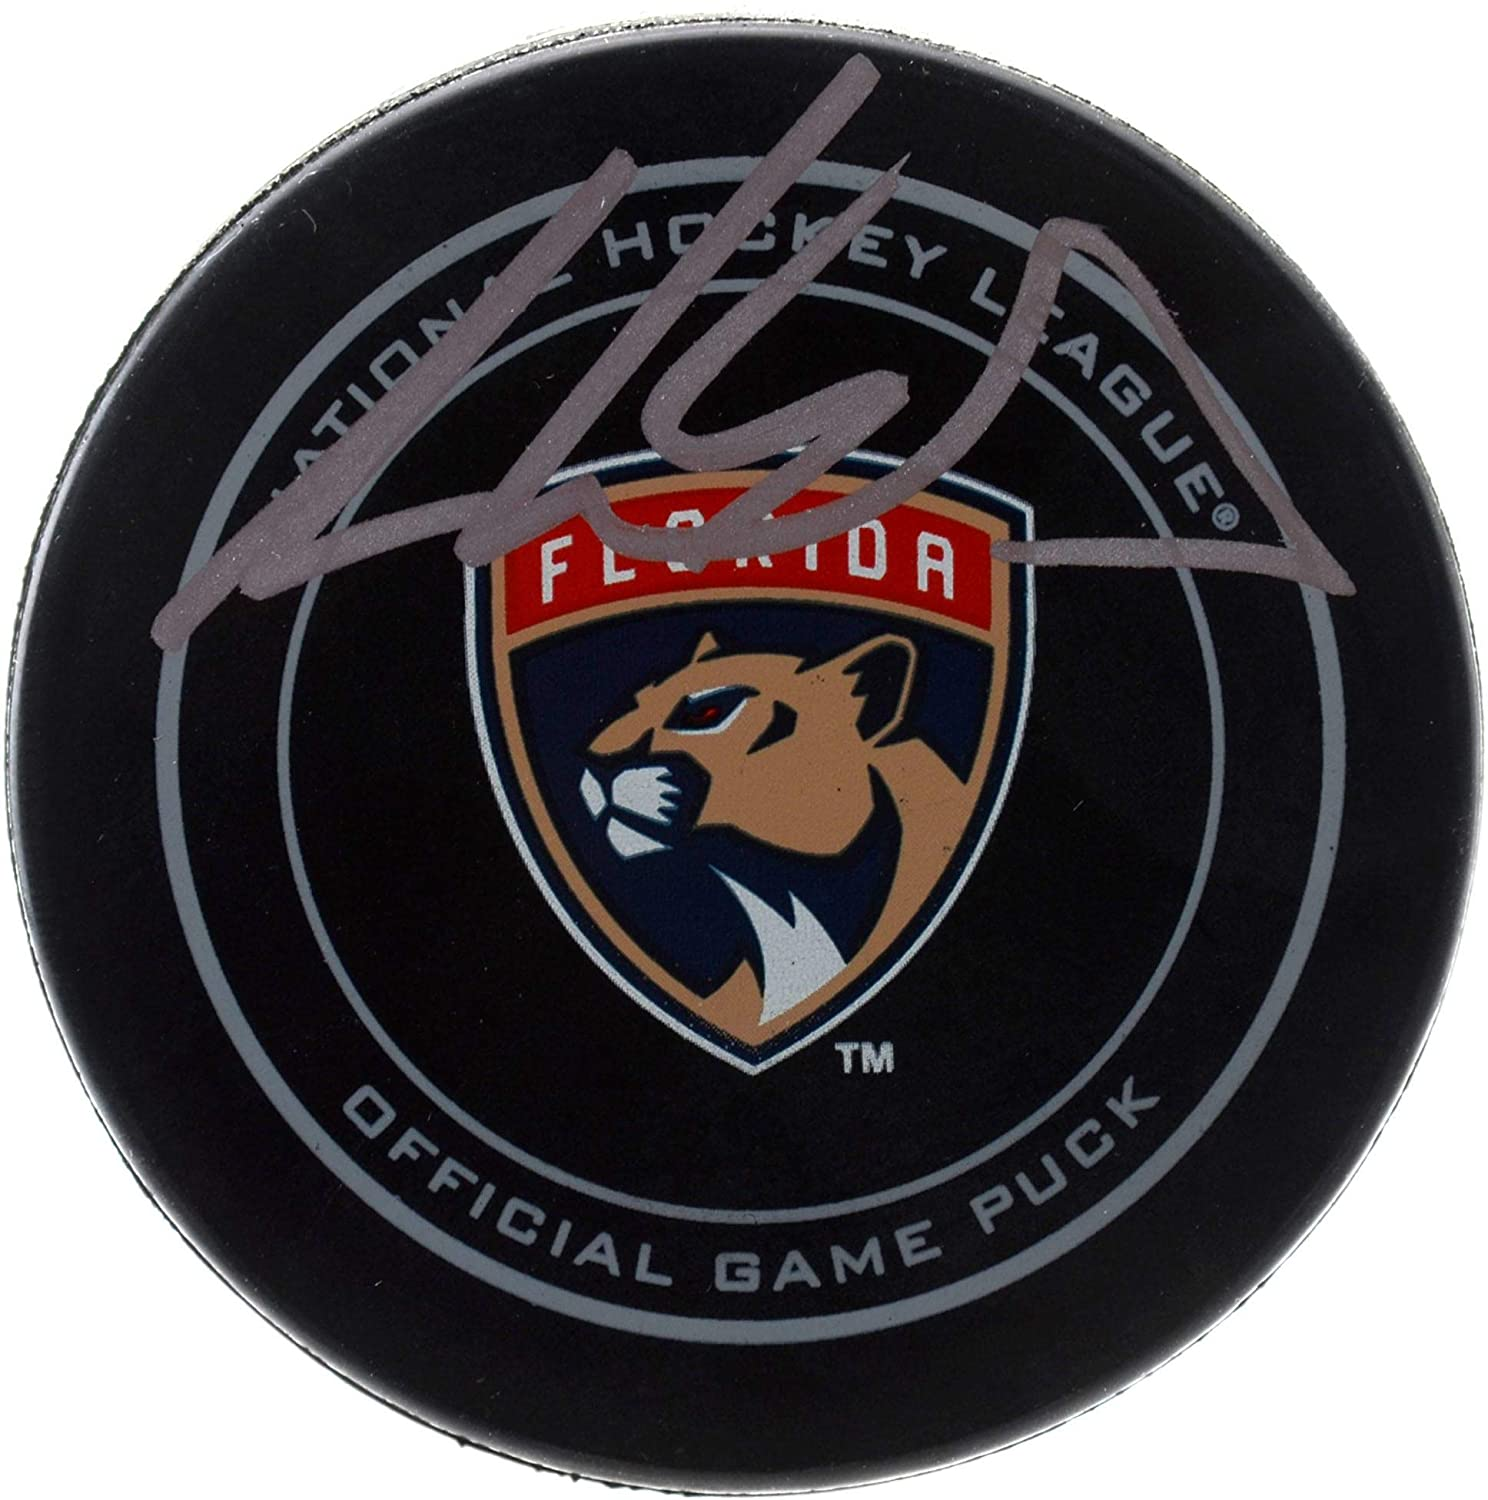 Aaron Ekblad Florida Panthers Autographed Official Game Puck - Fanatics Authentic Certified - Autographed NHL Pucks